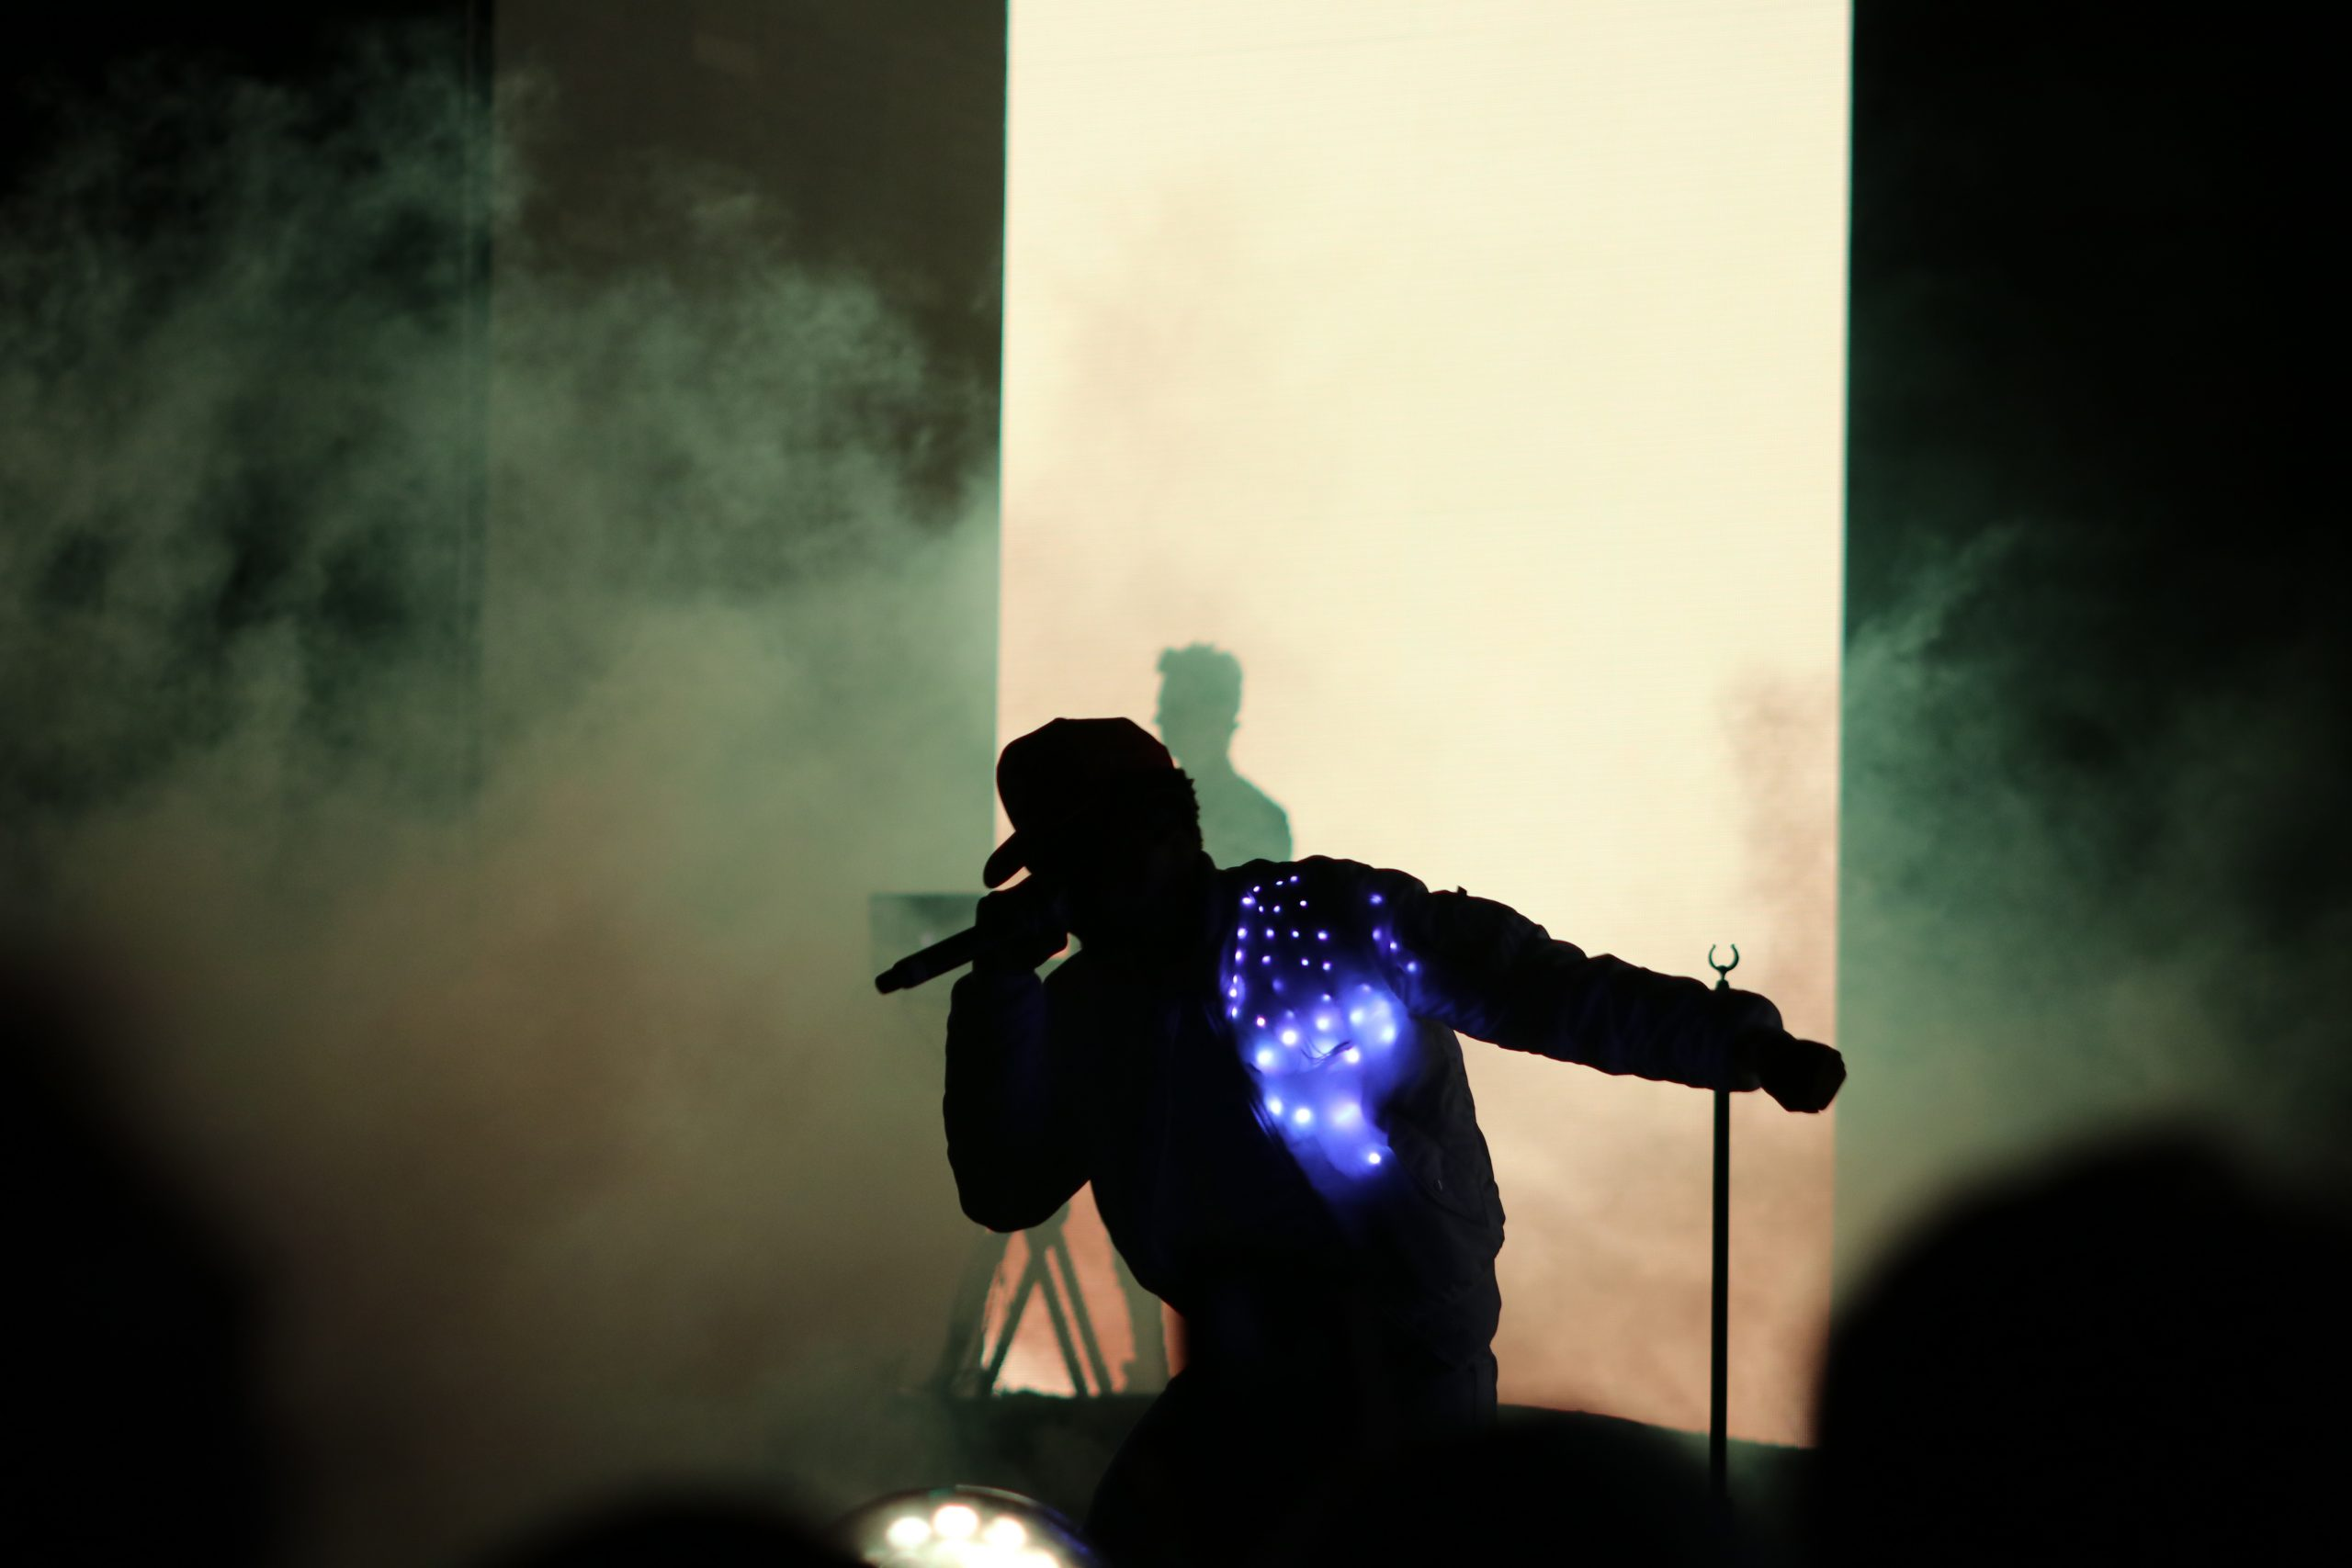 Chance's jacket lights the way.